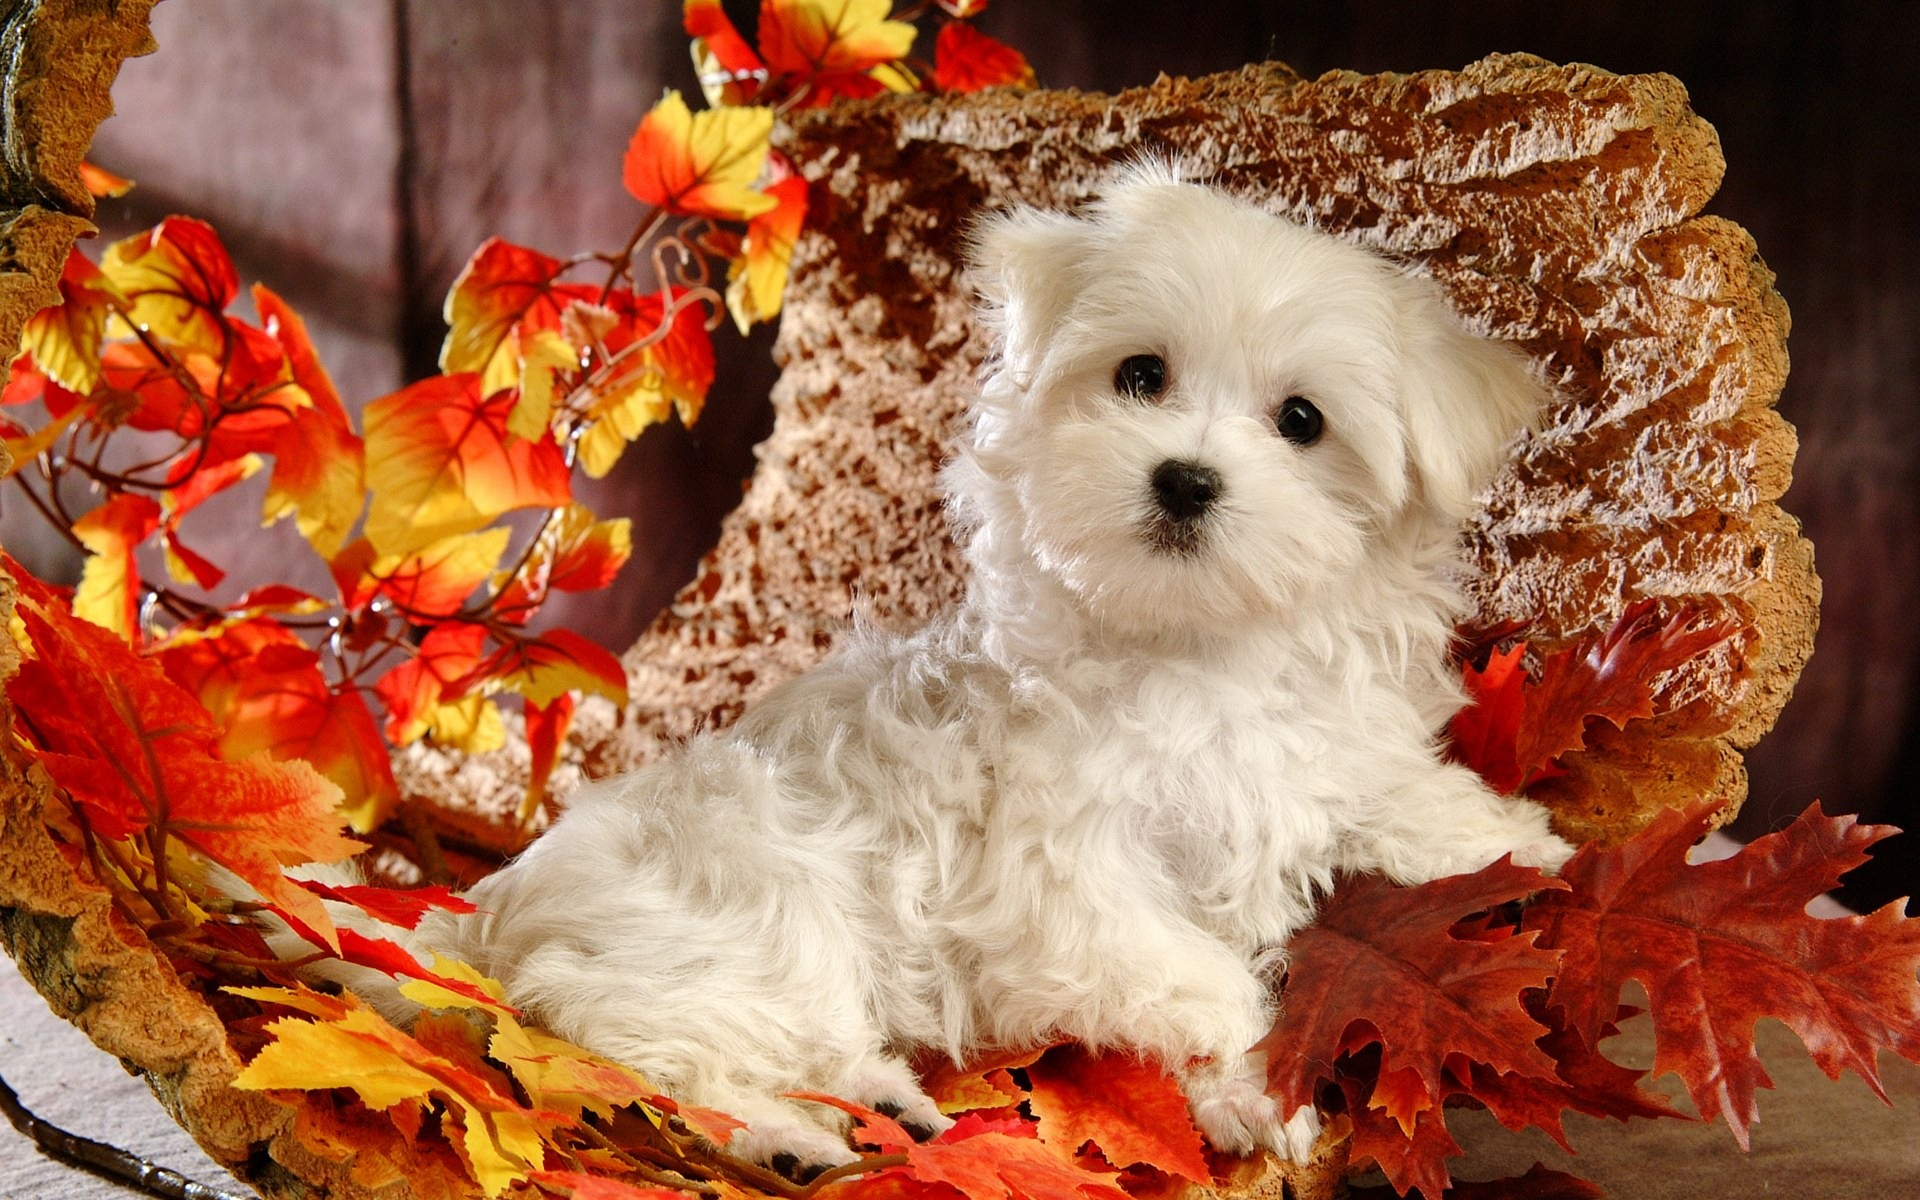 Cute White Fluffy Puppy Photos HD Wallpapers 21